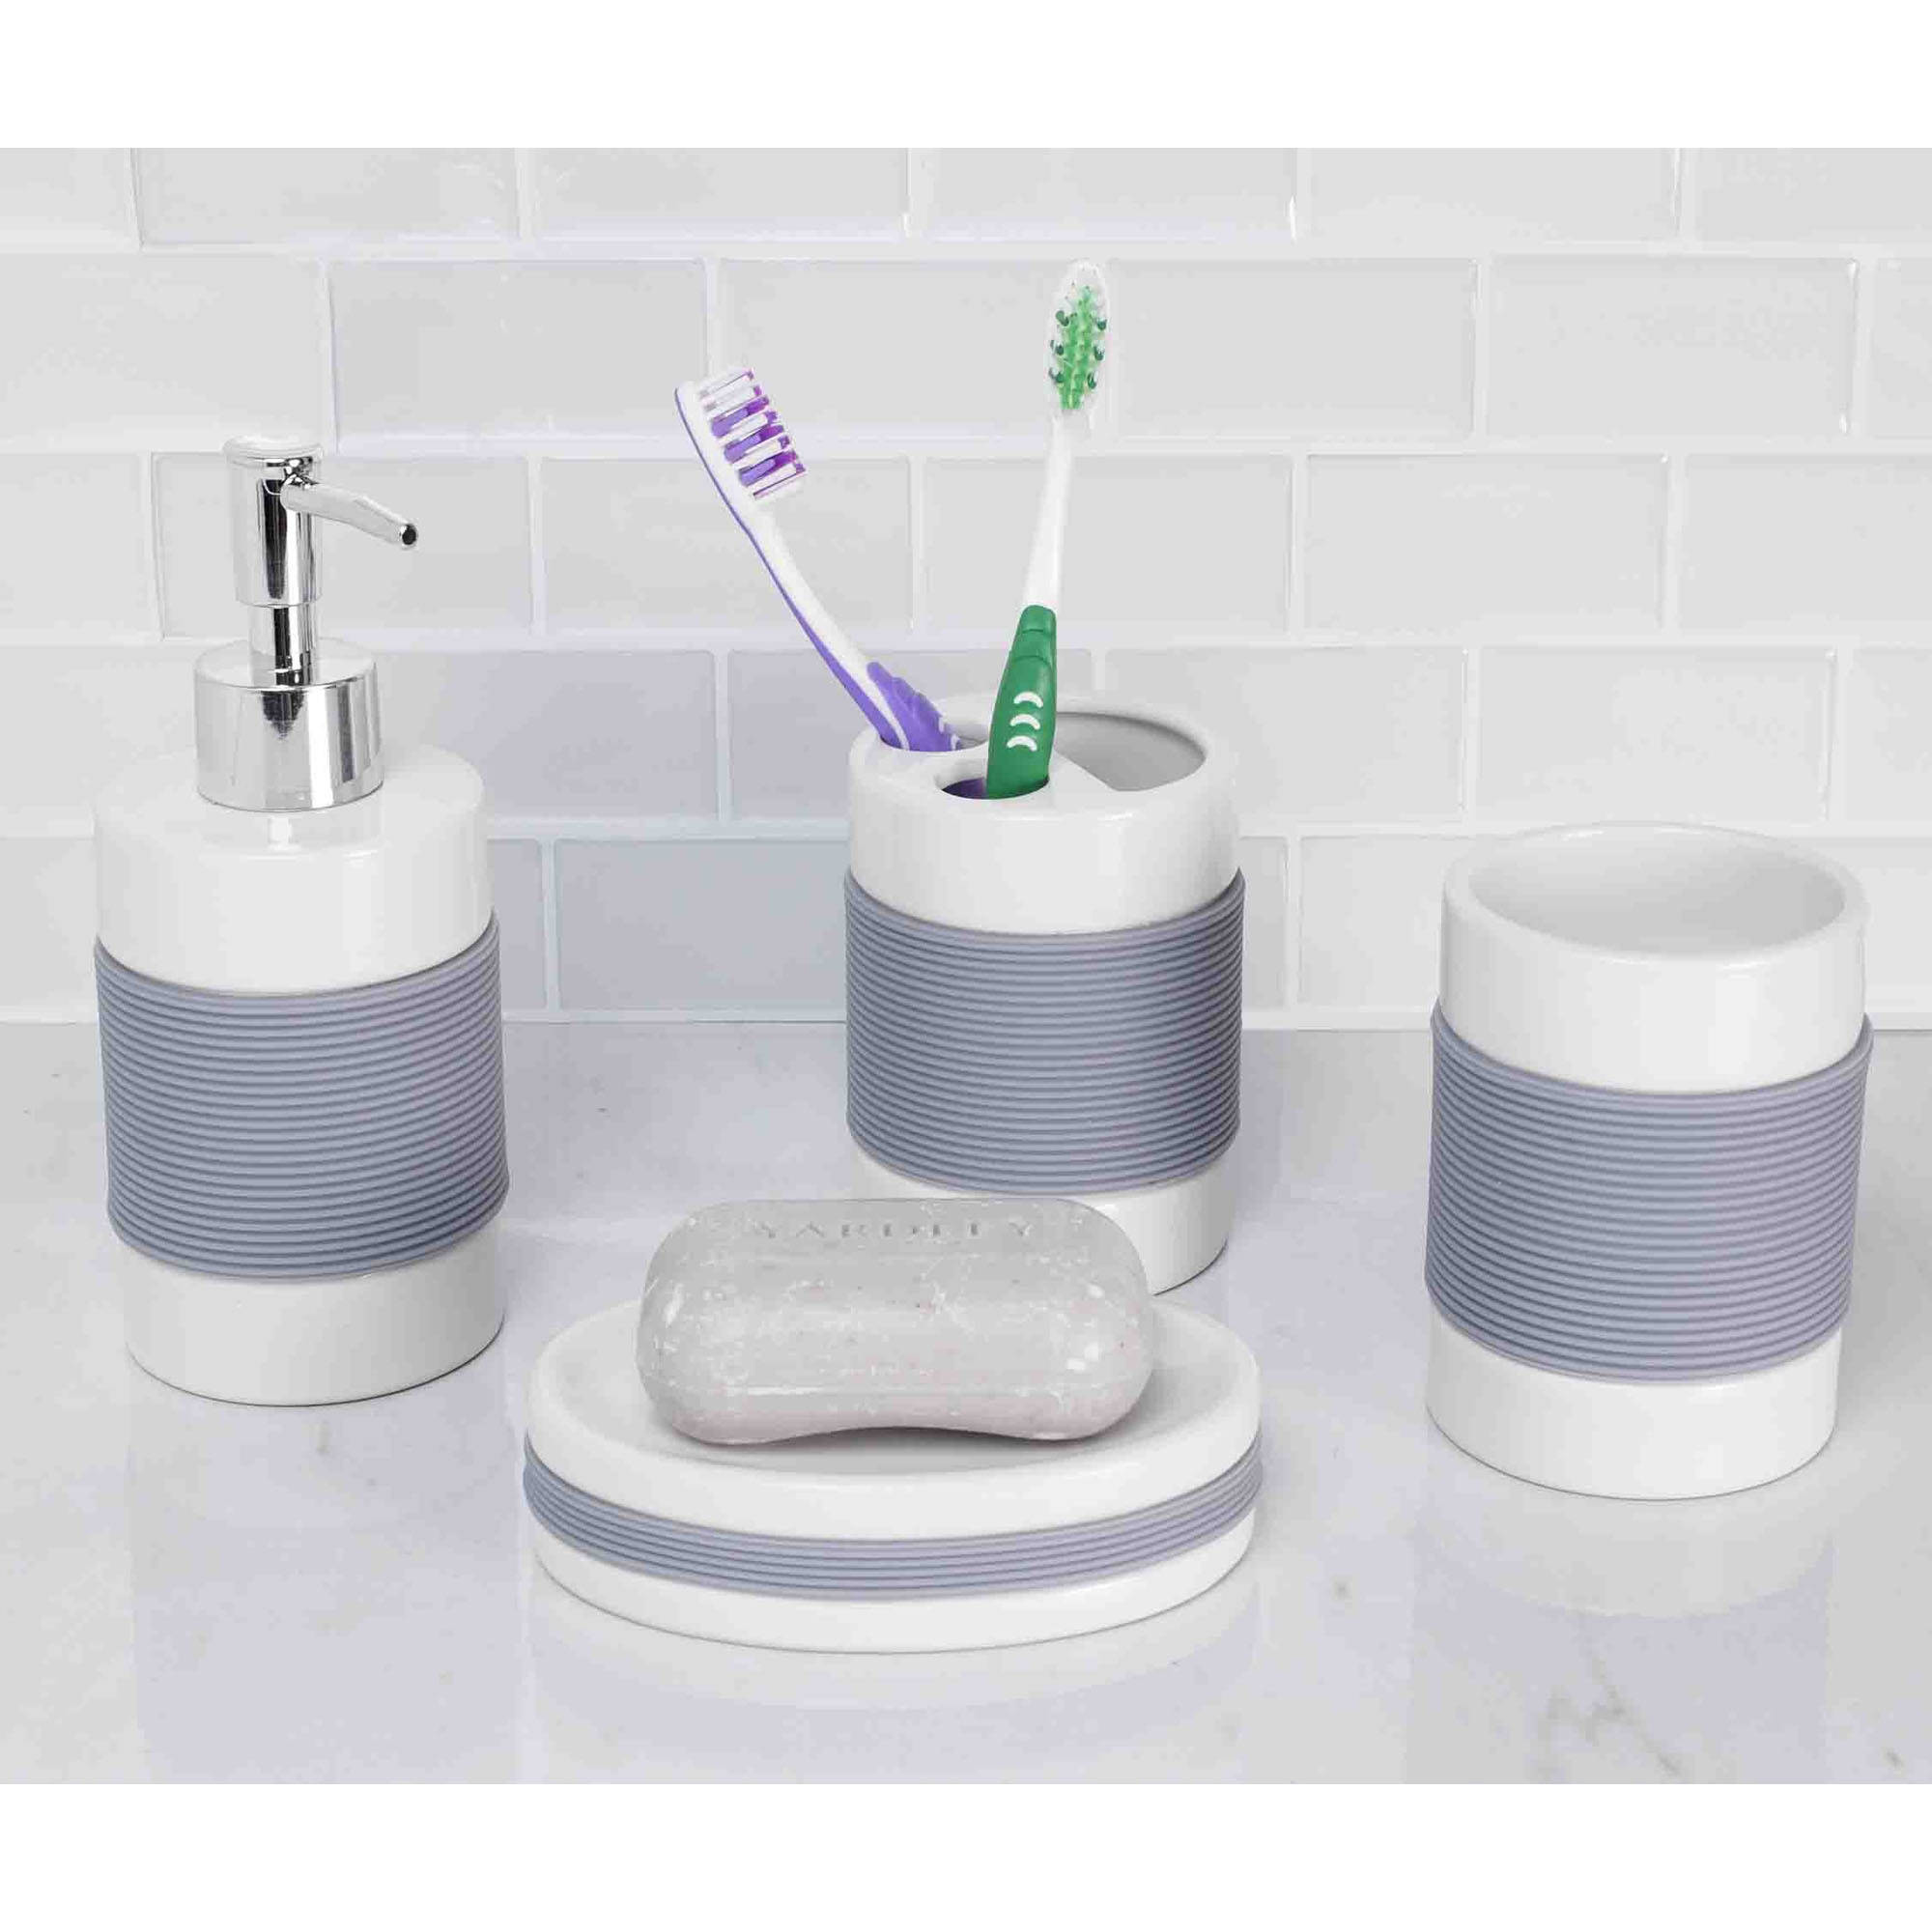 Home Basics 4-Piece White with Rubber Bathroom Accessory Set by Generic